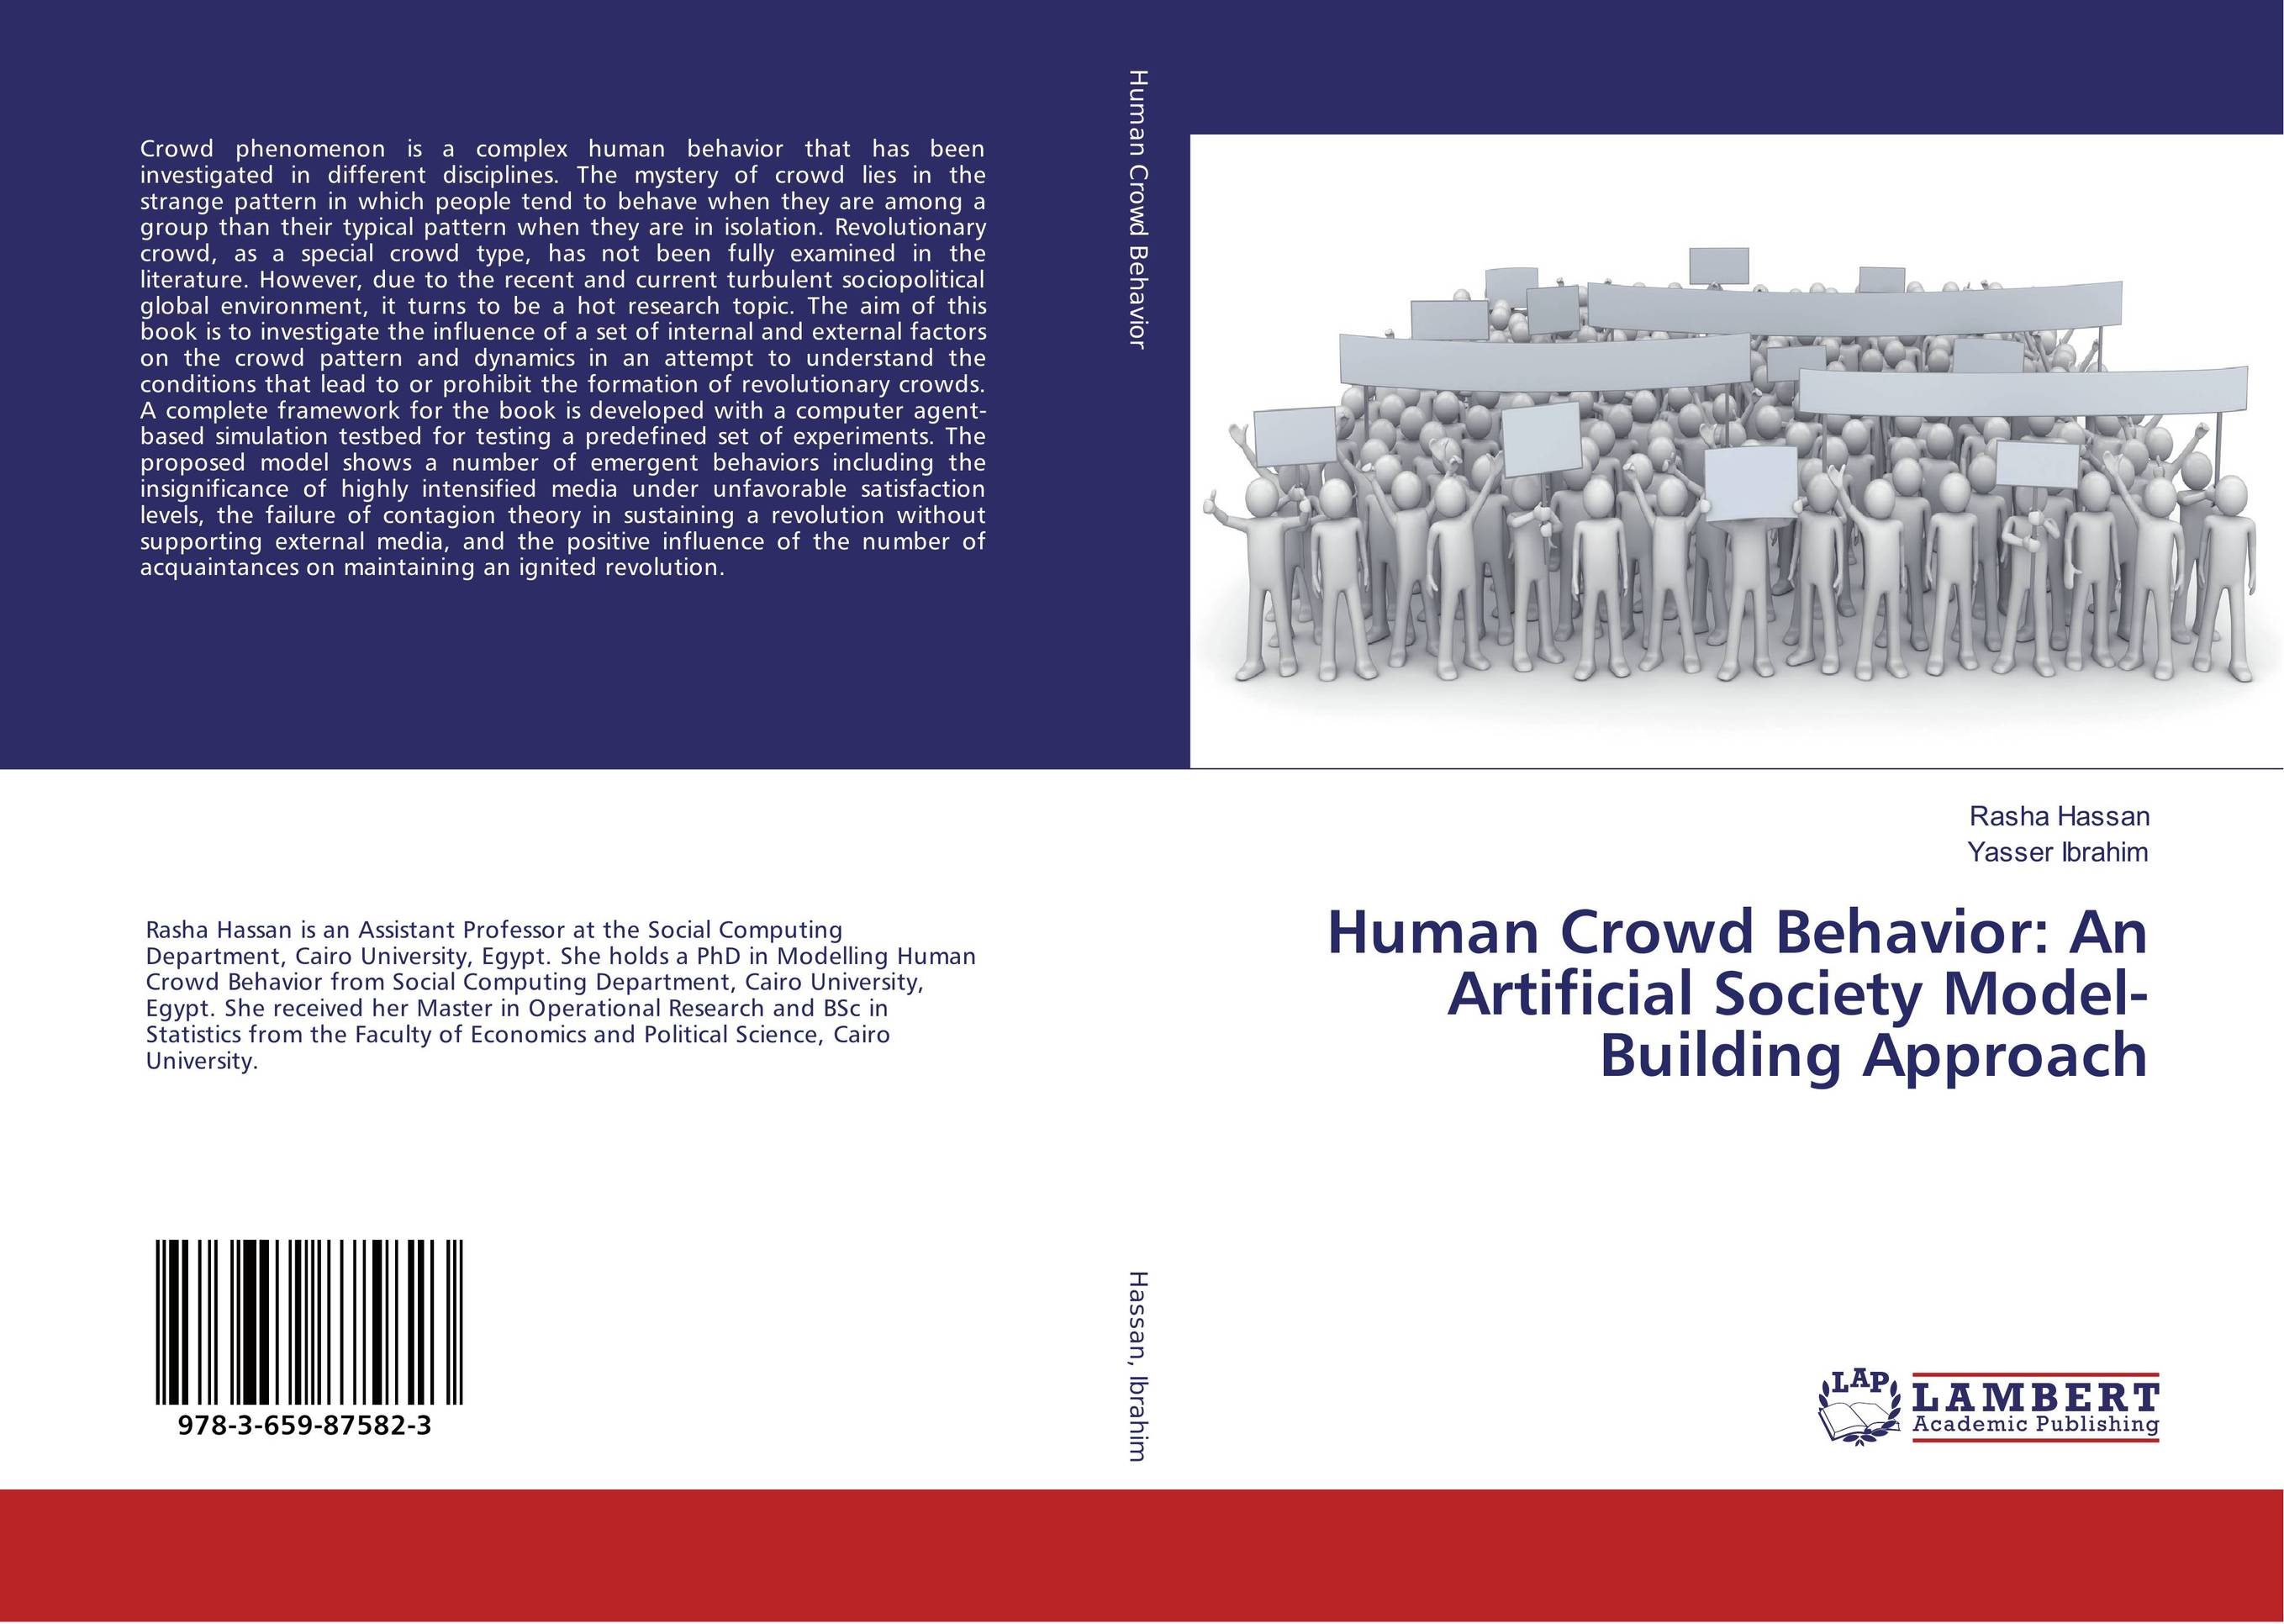 Human Crowd Behavior: An Artificial Society Model-Building Approach kenneth fisher beat the crowd